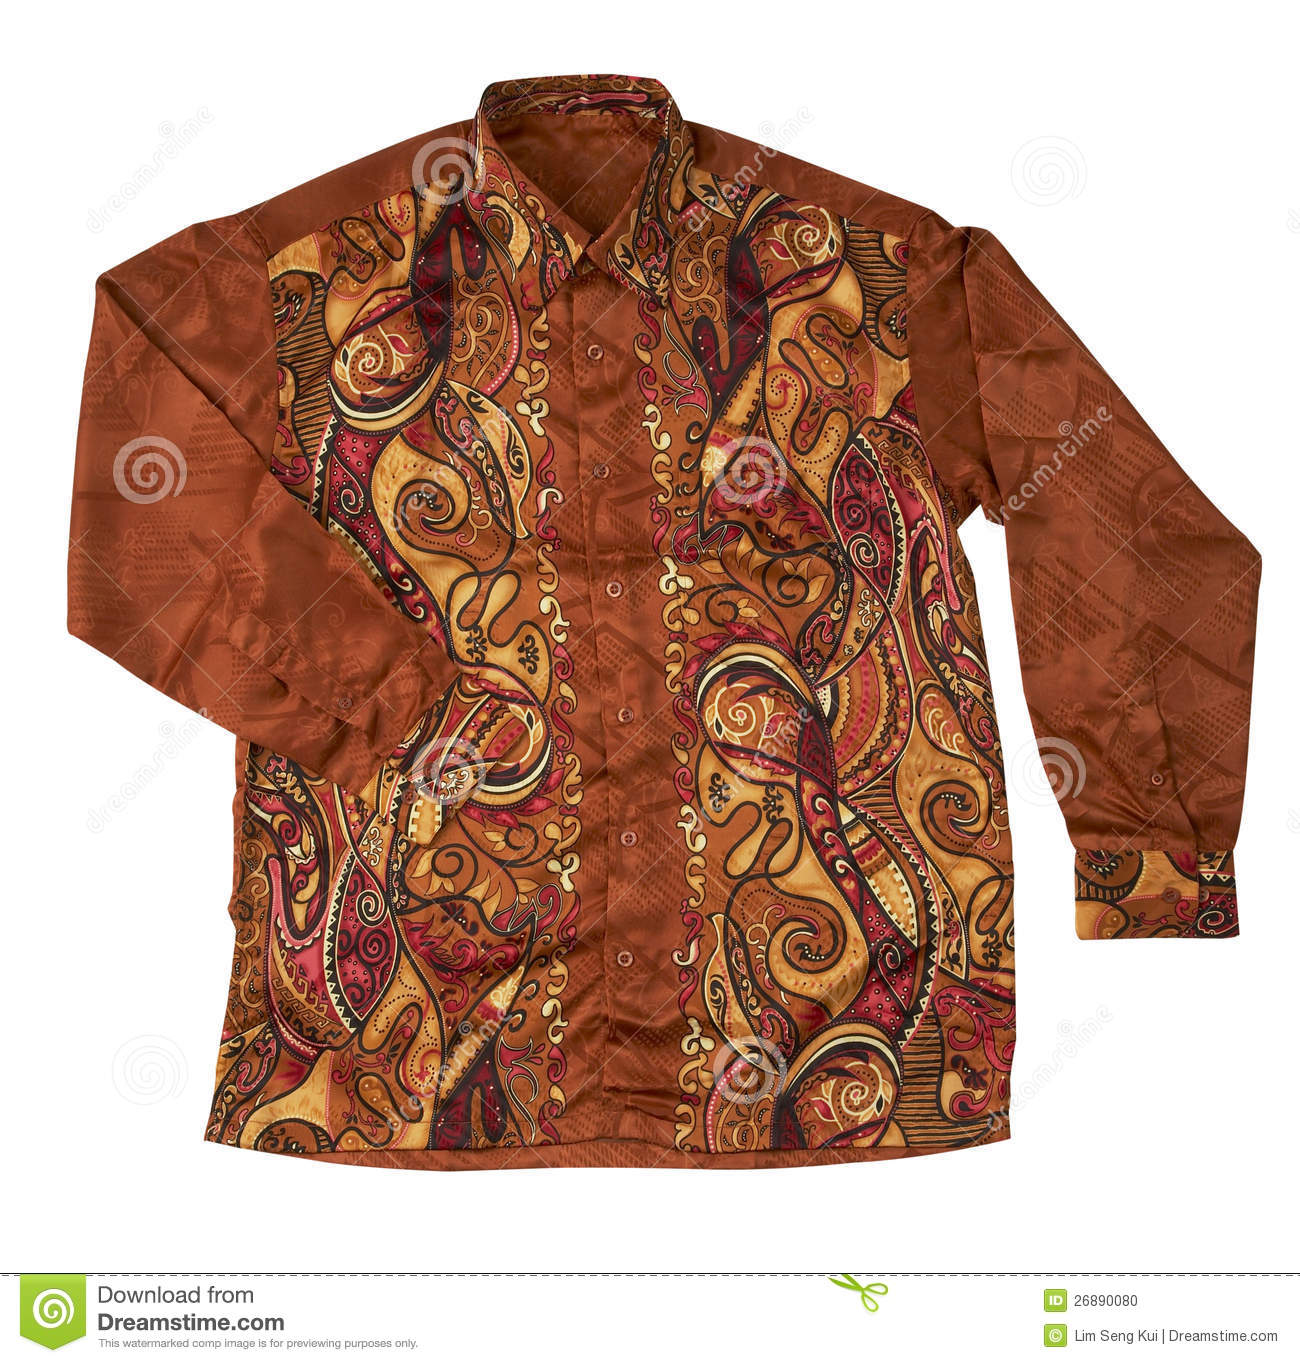 Batik Shirt Stock Photo. Image Of Colorful, Culture